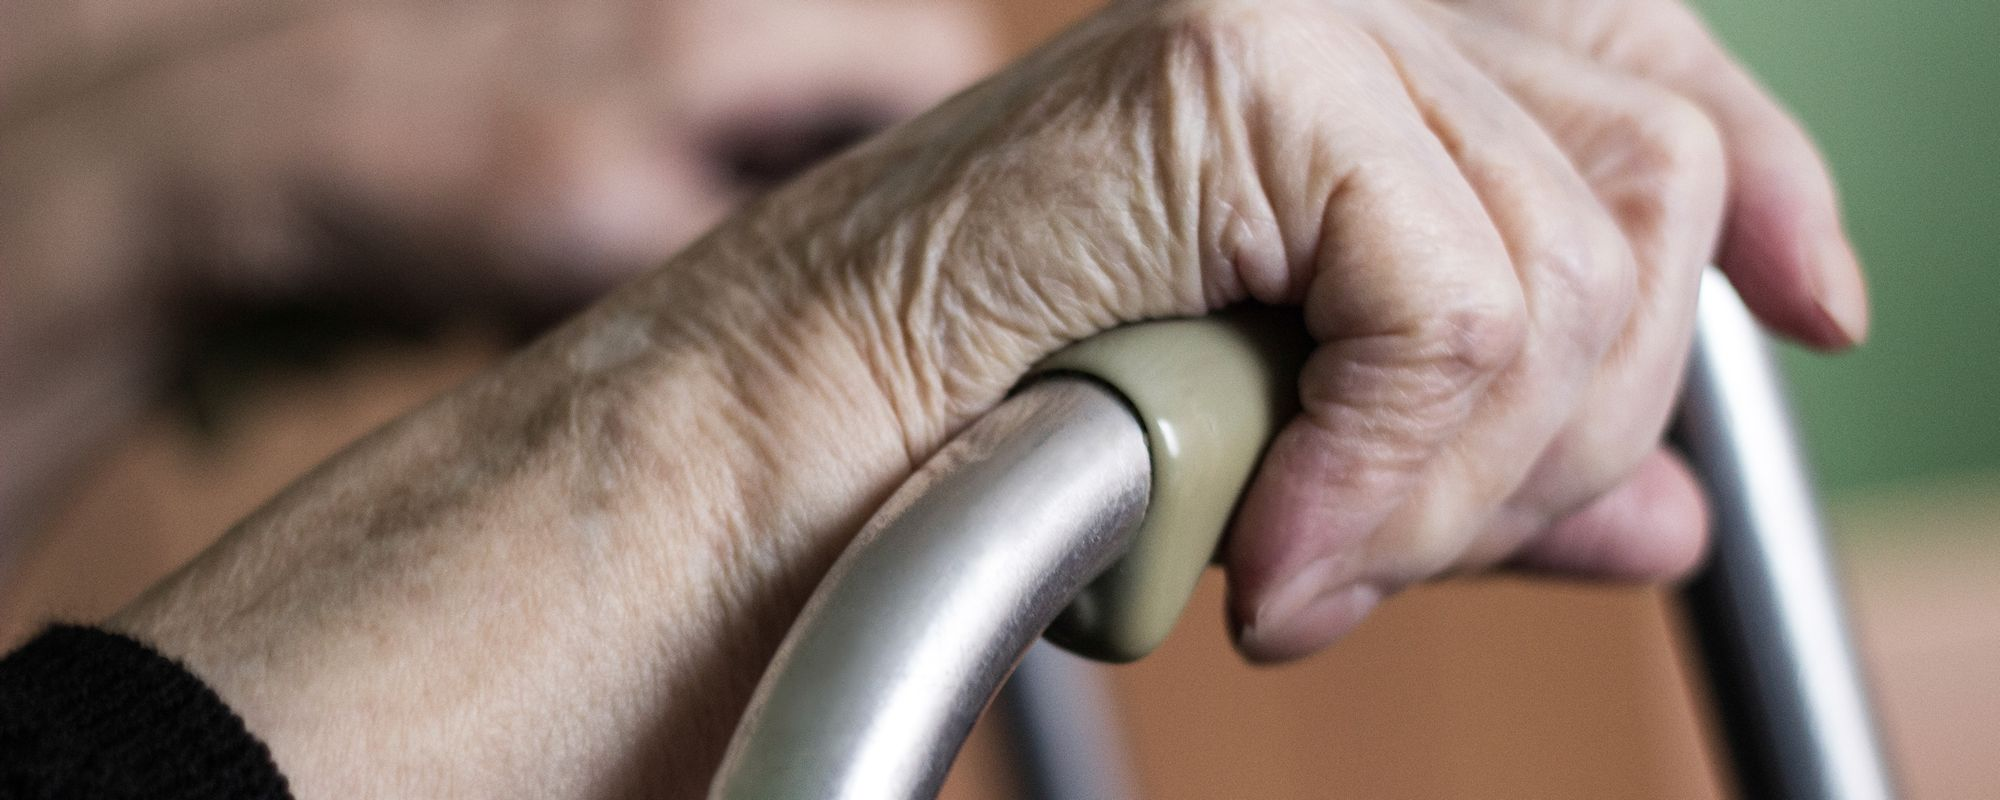 Older person's hand gripping a walker.